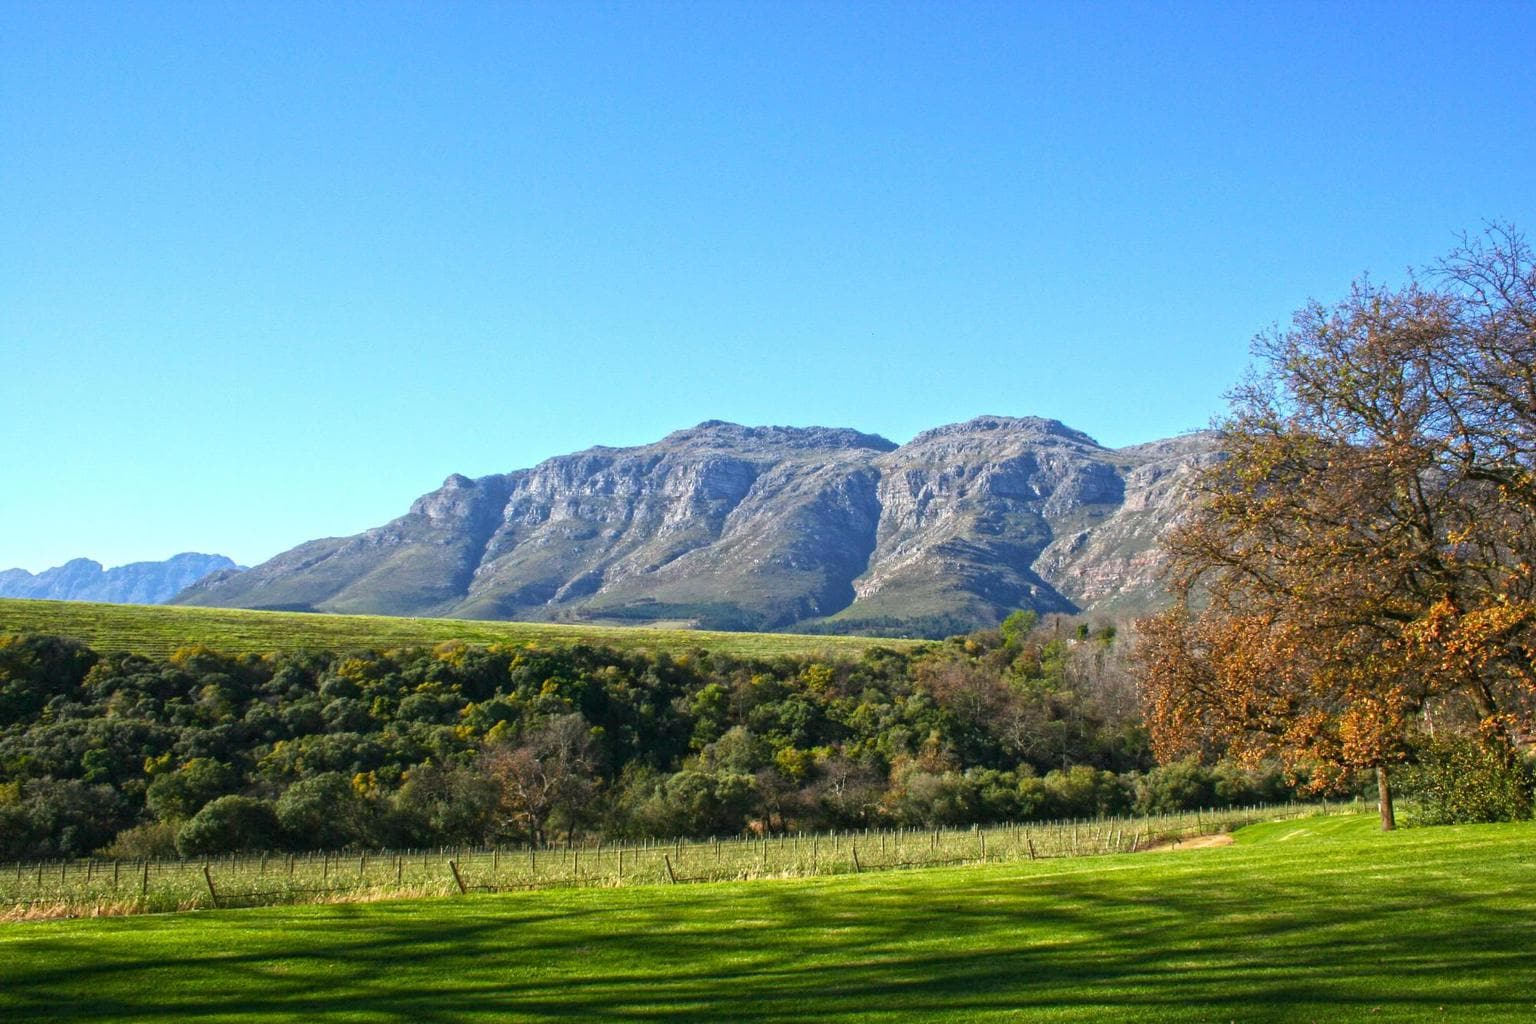 Epic views at Rust en Vrede